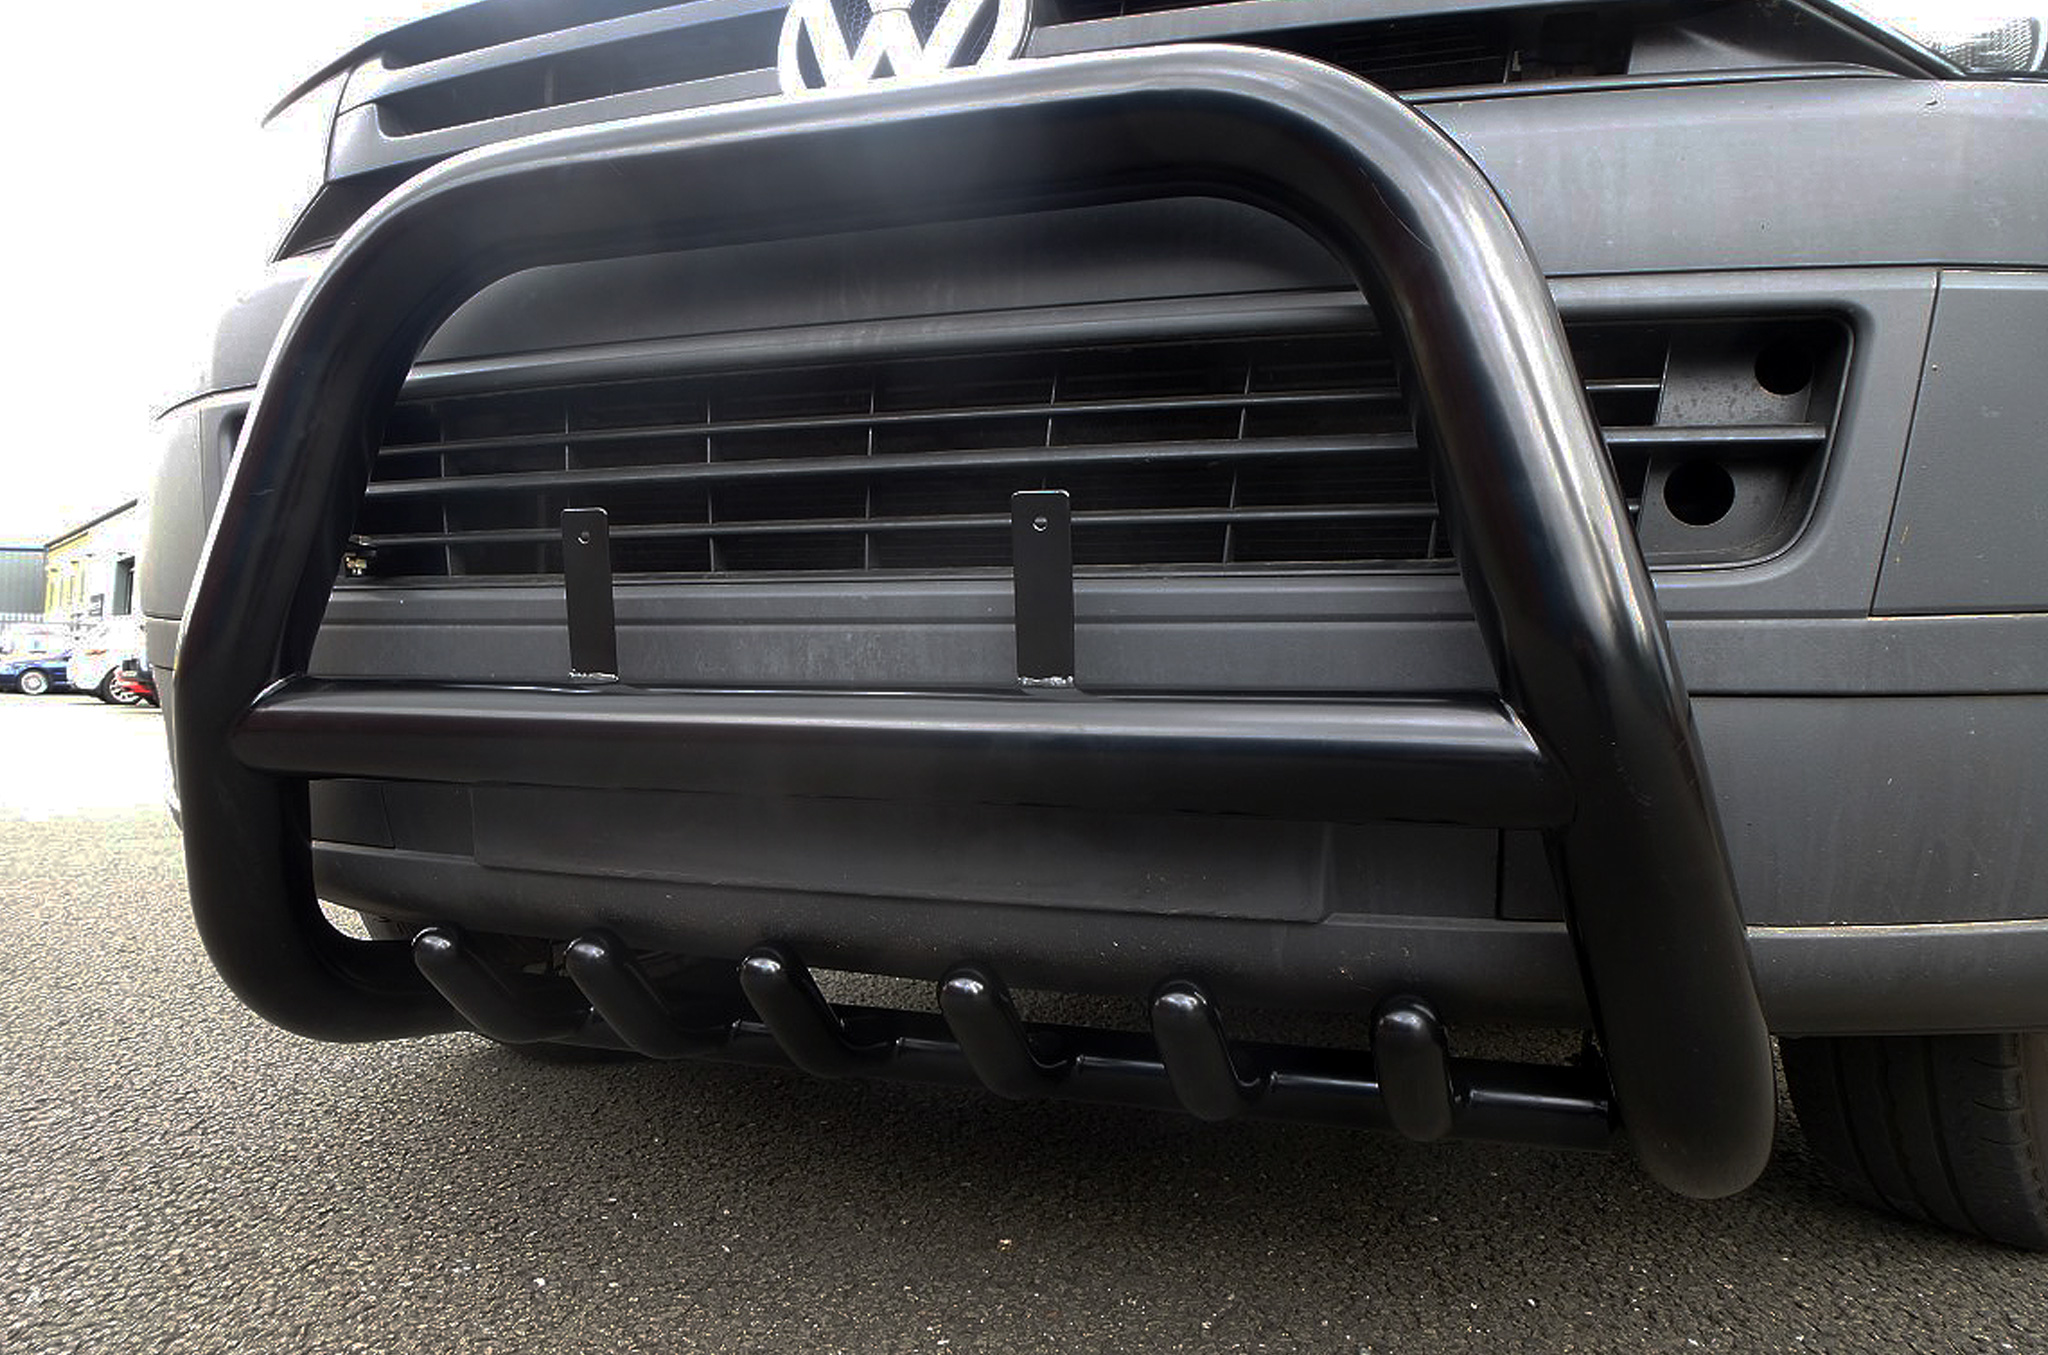 Vw T5 Black Swb Body Exterior Styling Spare Eu A Bar Bull Bar With Axle Guards Ebay